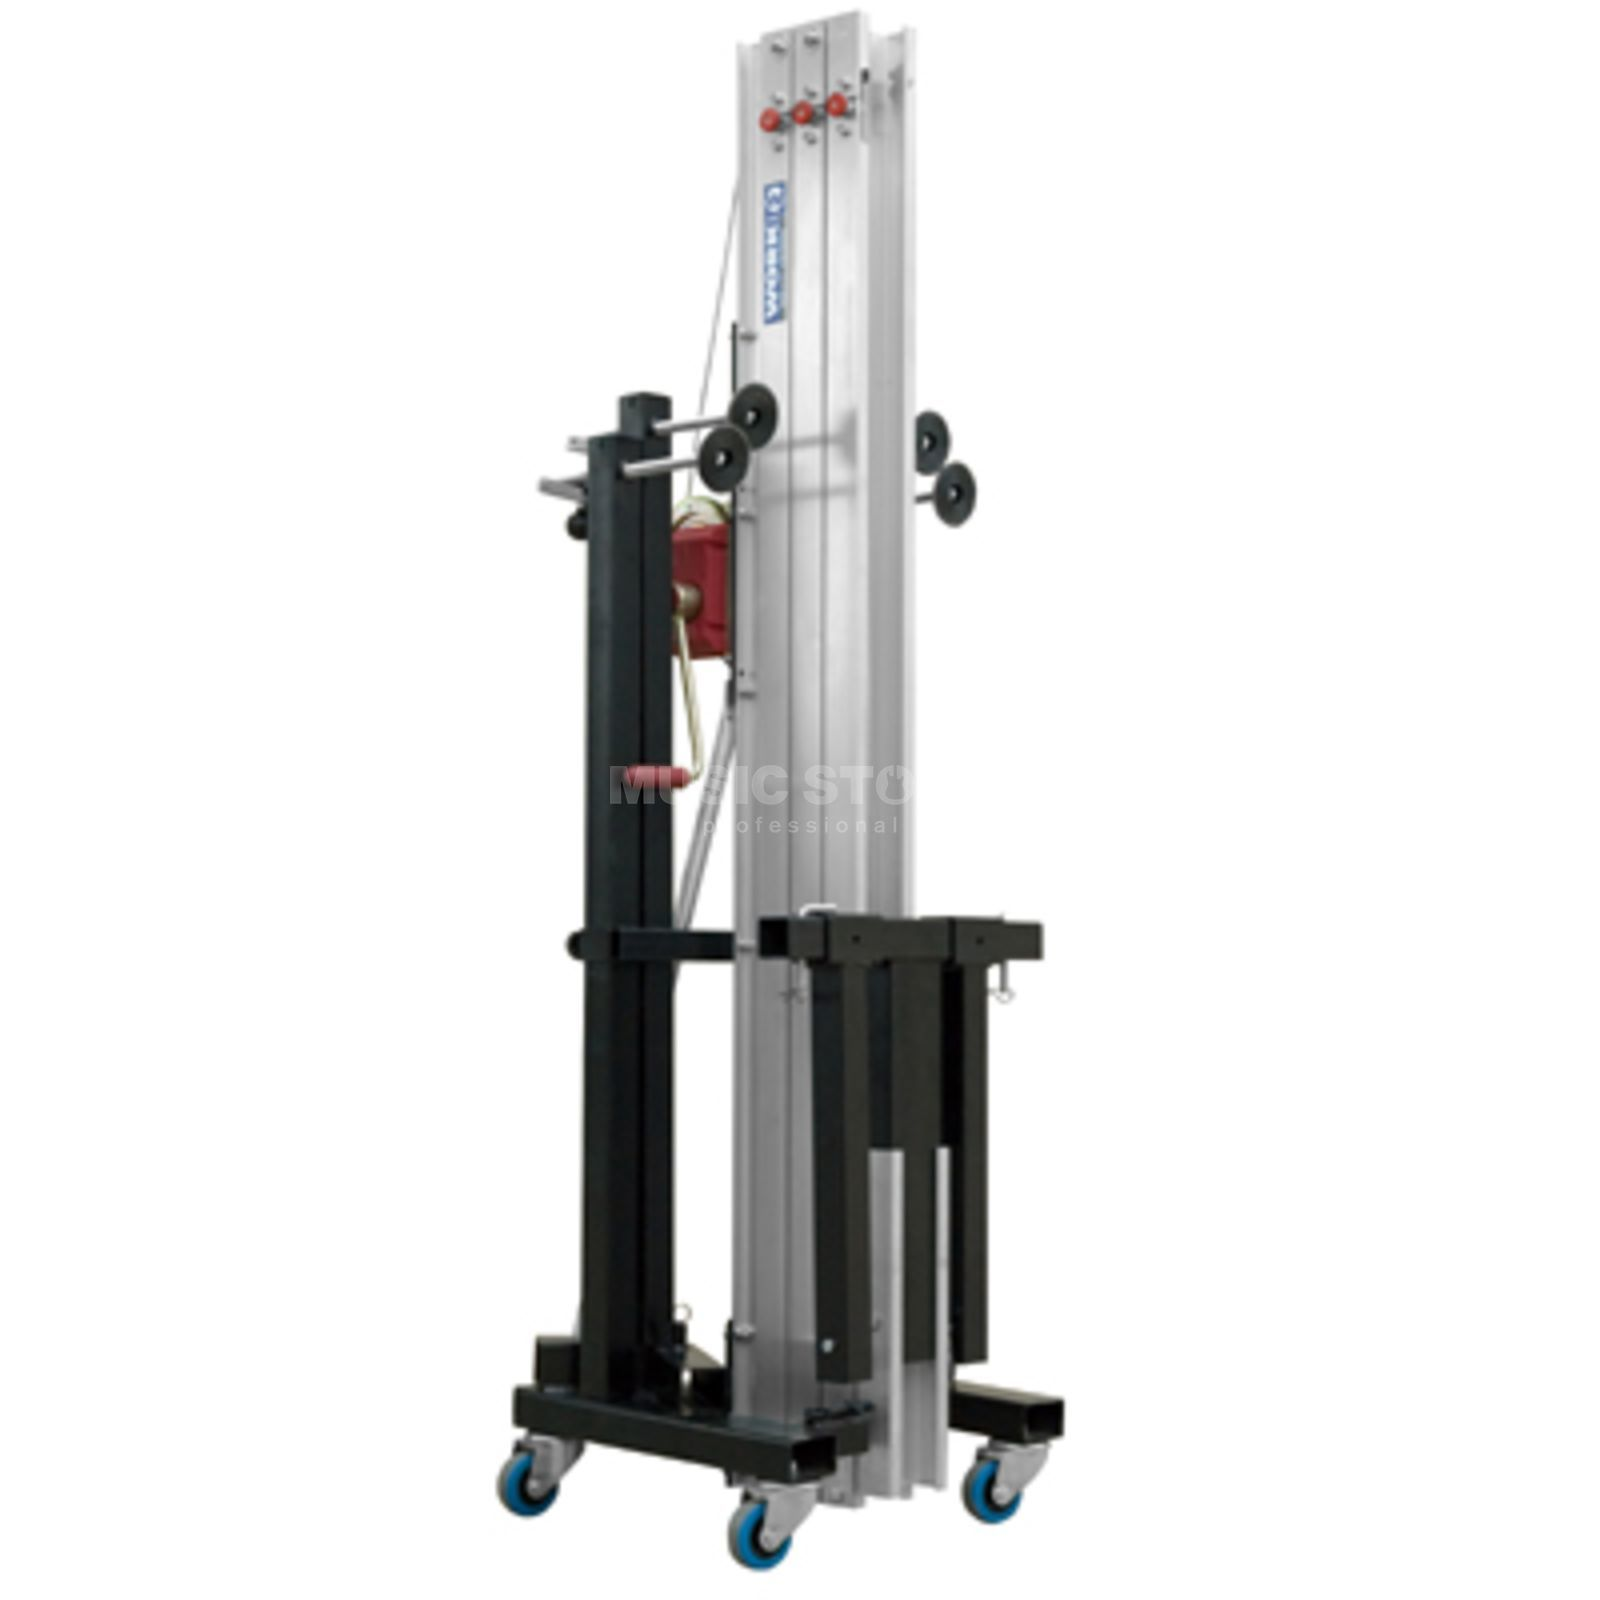 Work LW 415 RB Traversenlift 170 kg, 5,00 m , BGV C1 black Product Image